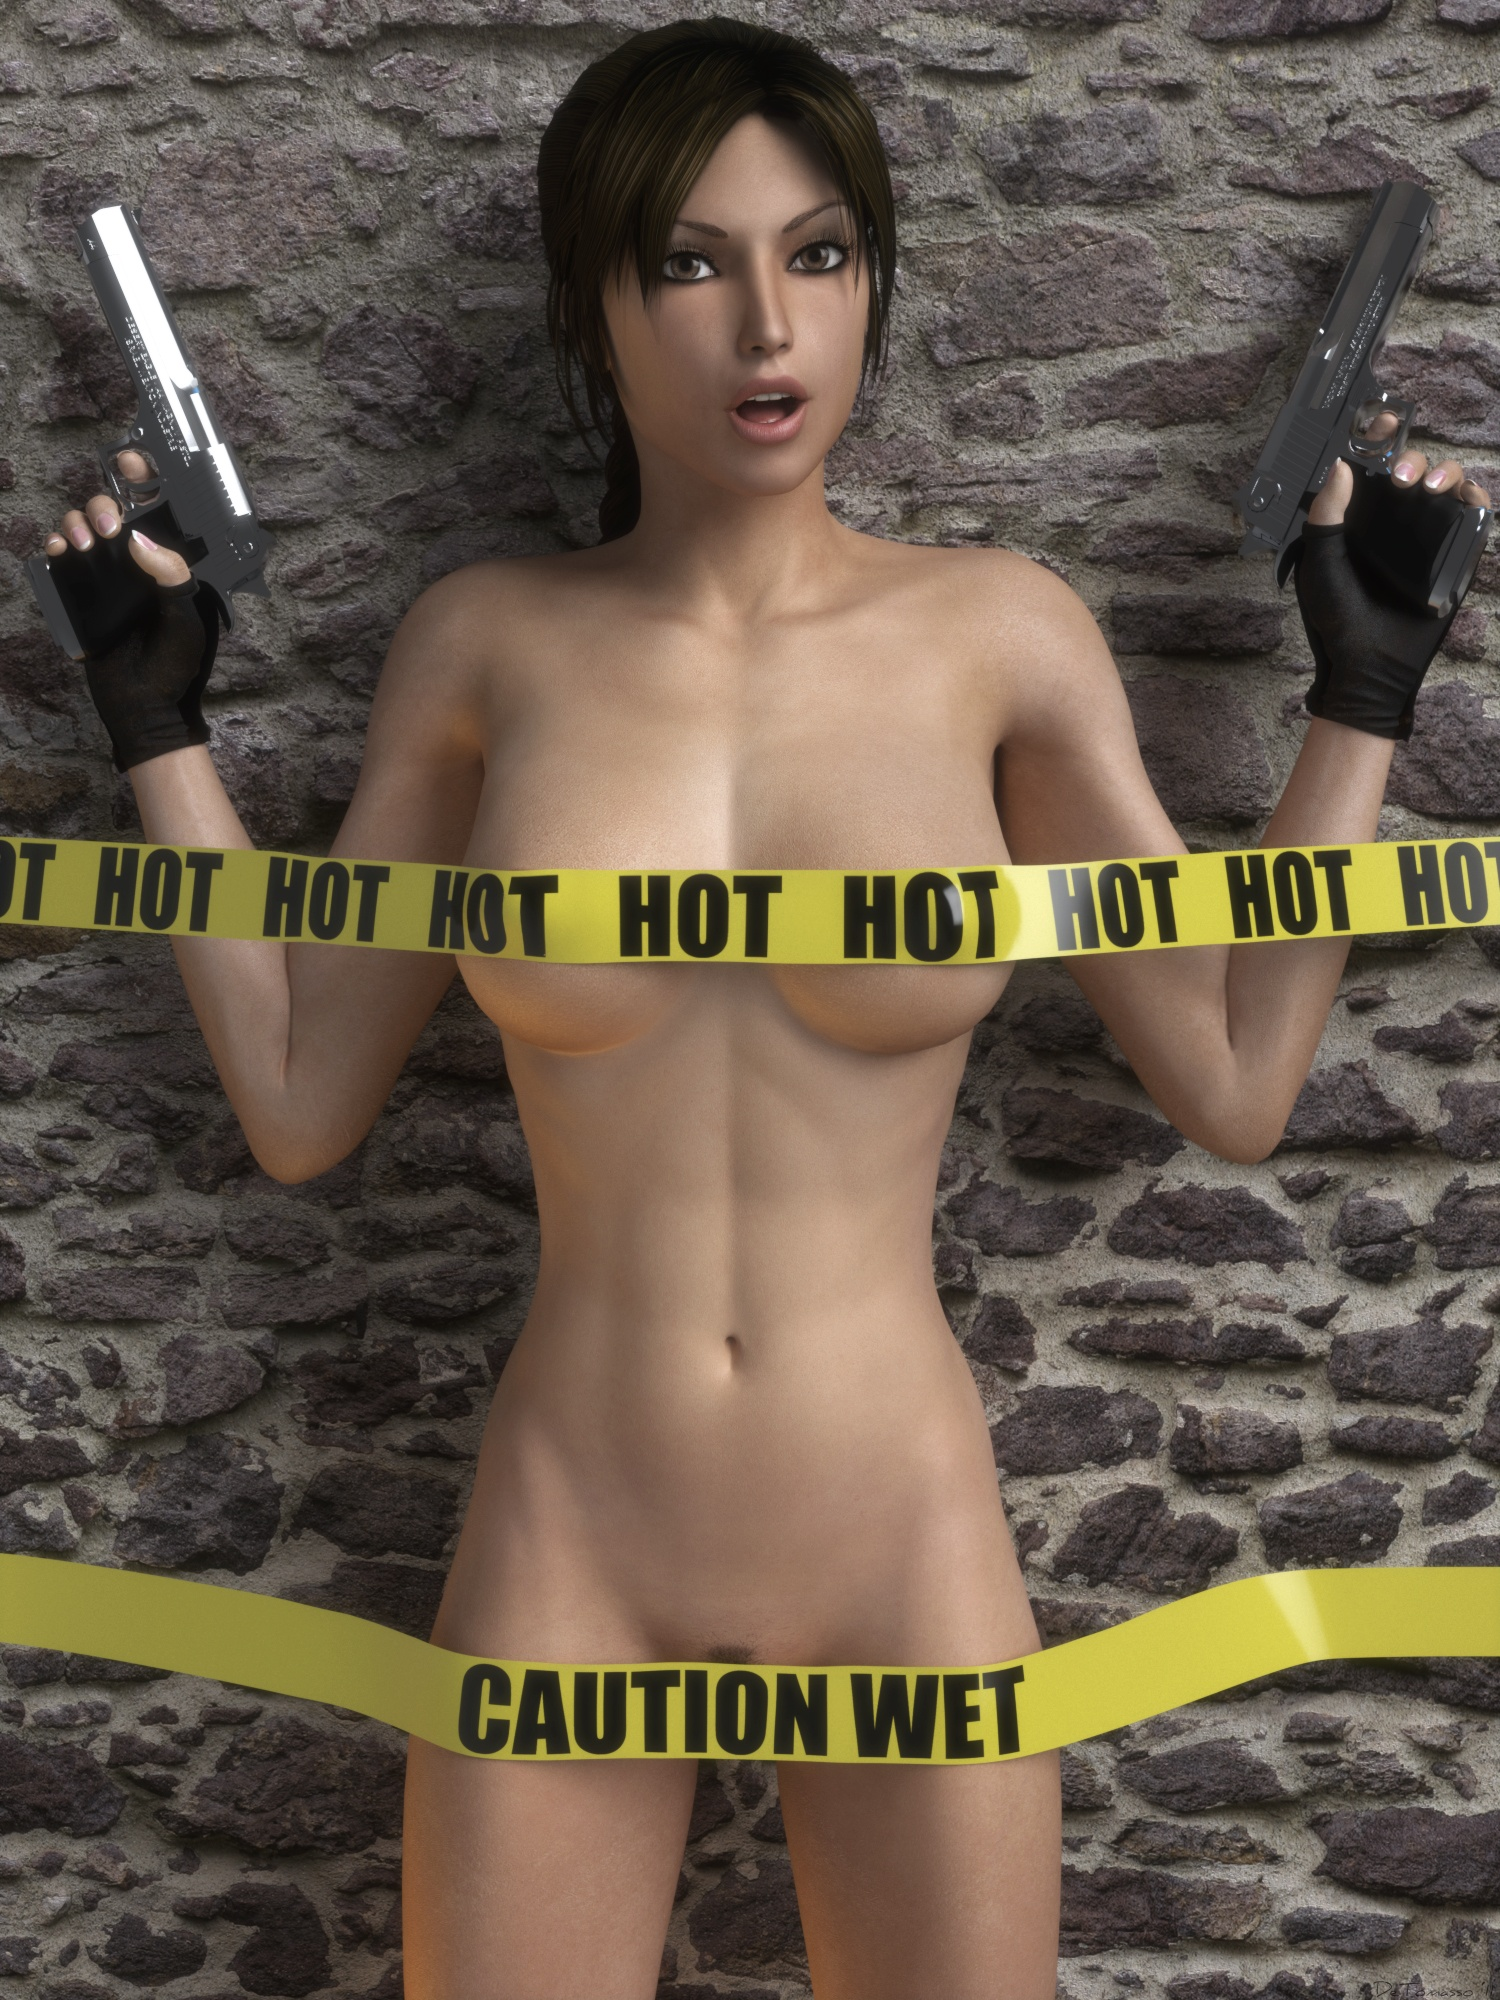 Game lara croft nude porn comic